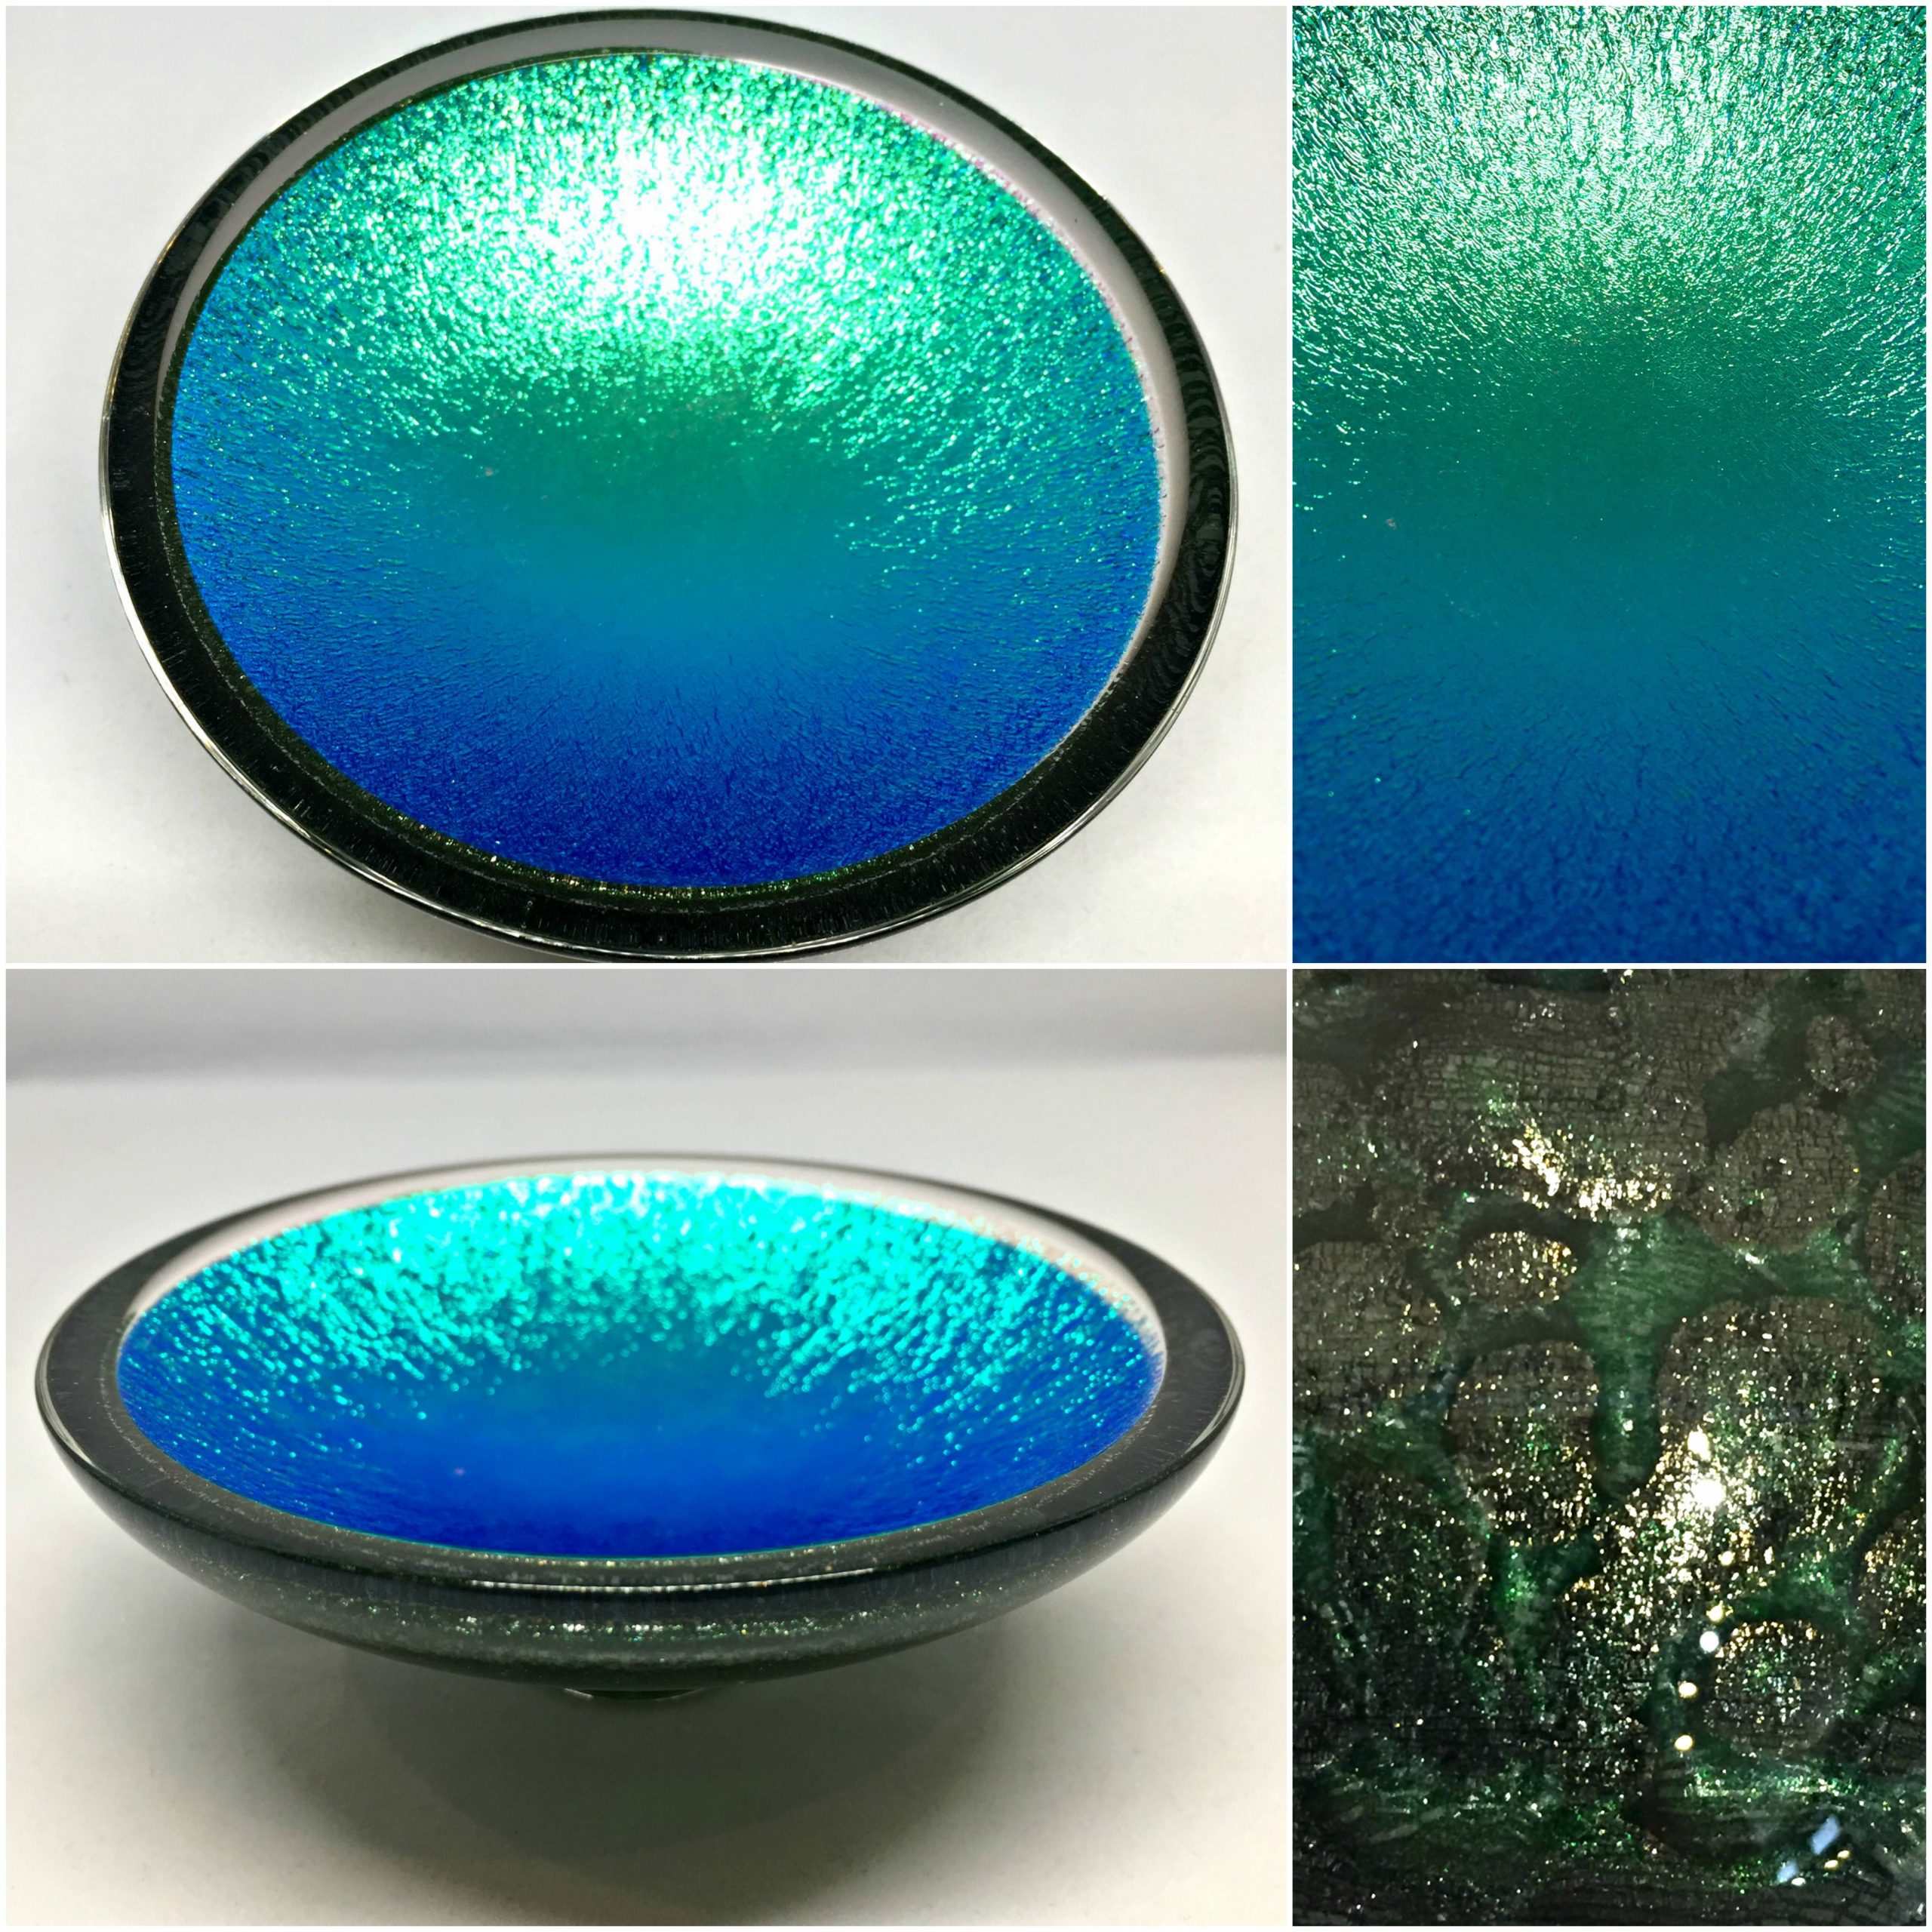 Thing of Beauty 3098, one-of-a-kind multichrome dichroic glass bowl by Jo Ludwig | Effusion Art Gallery + Glass Studio, Invermere BC